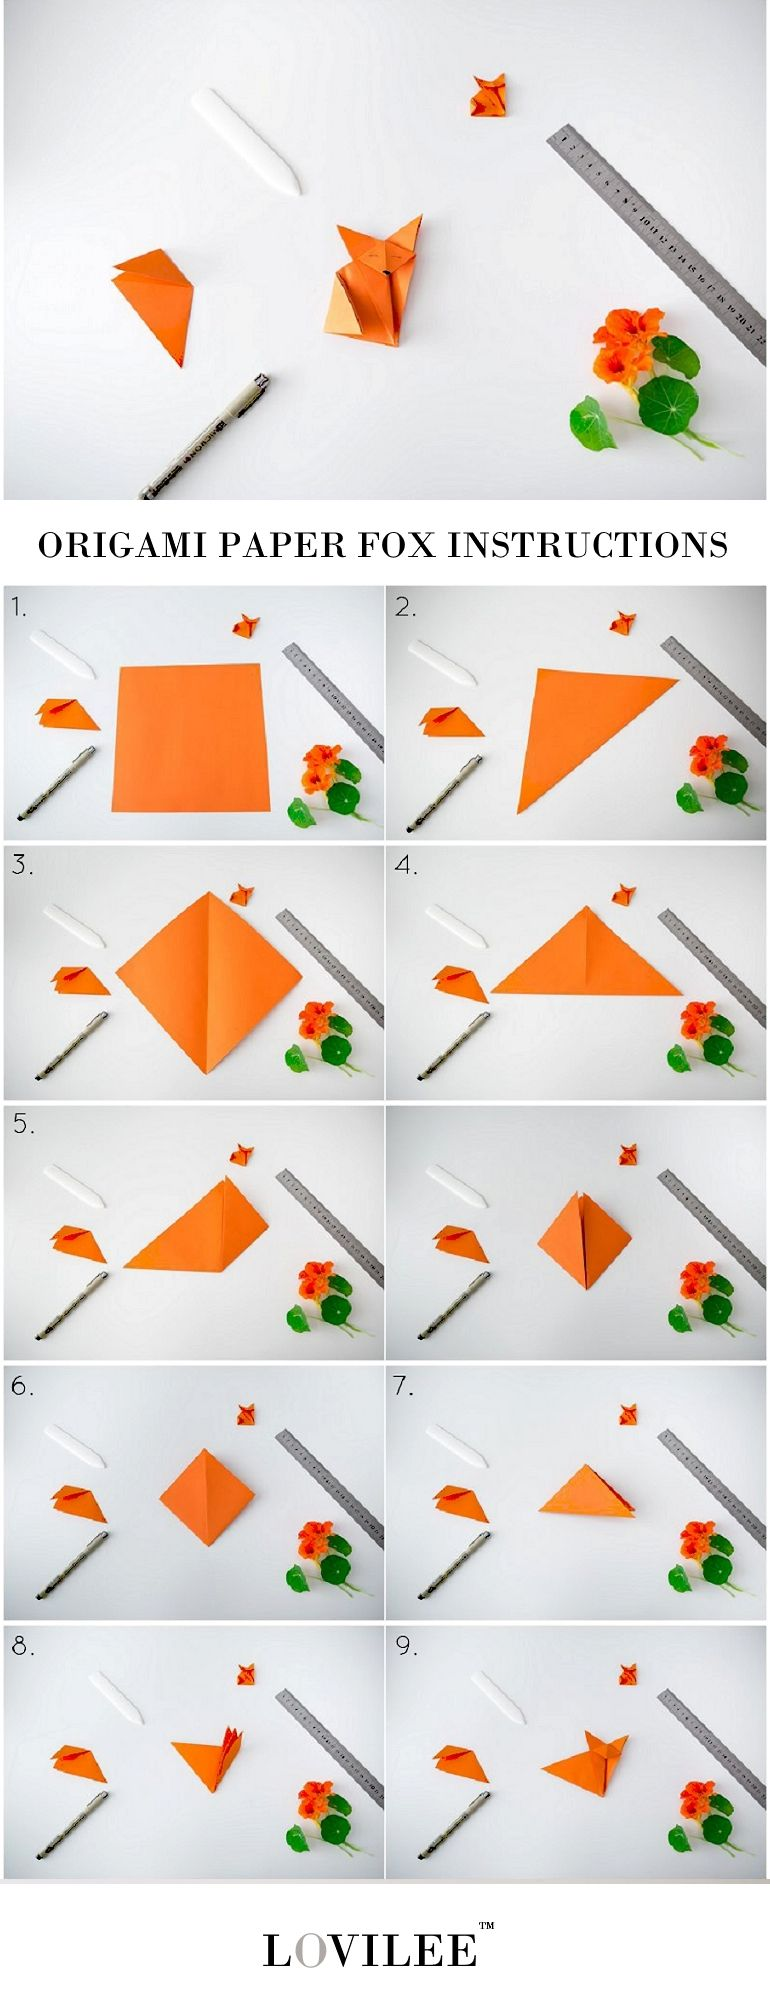 How to make an origami fox face step by step. - YouTube | 1997x770